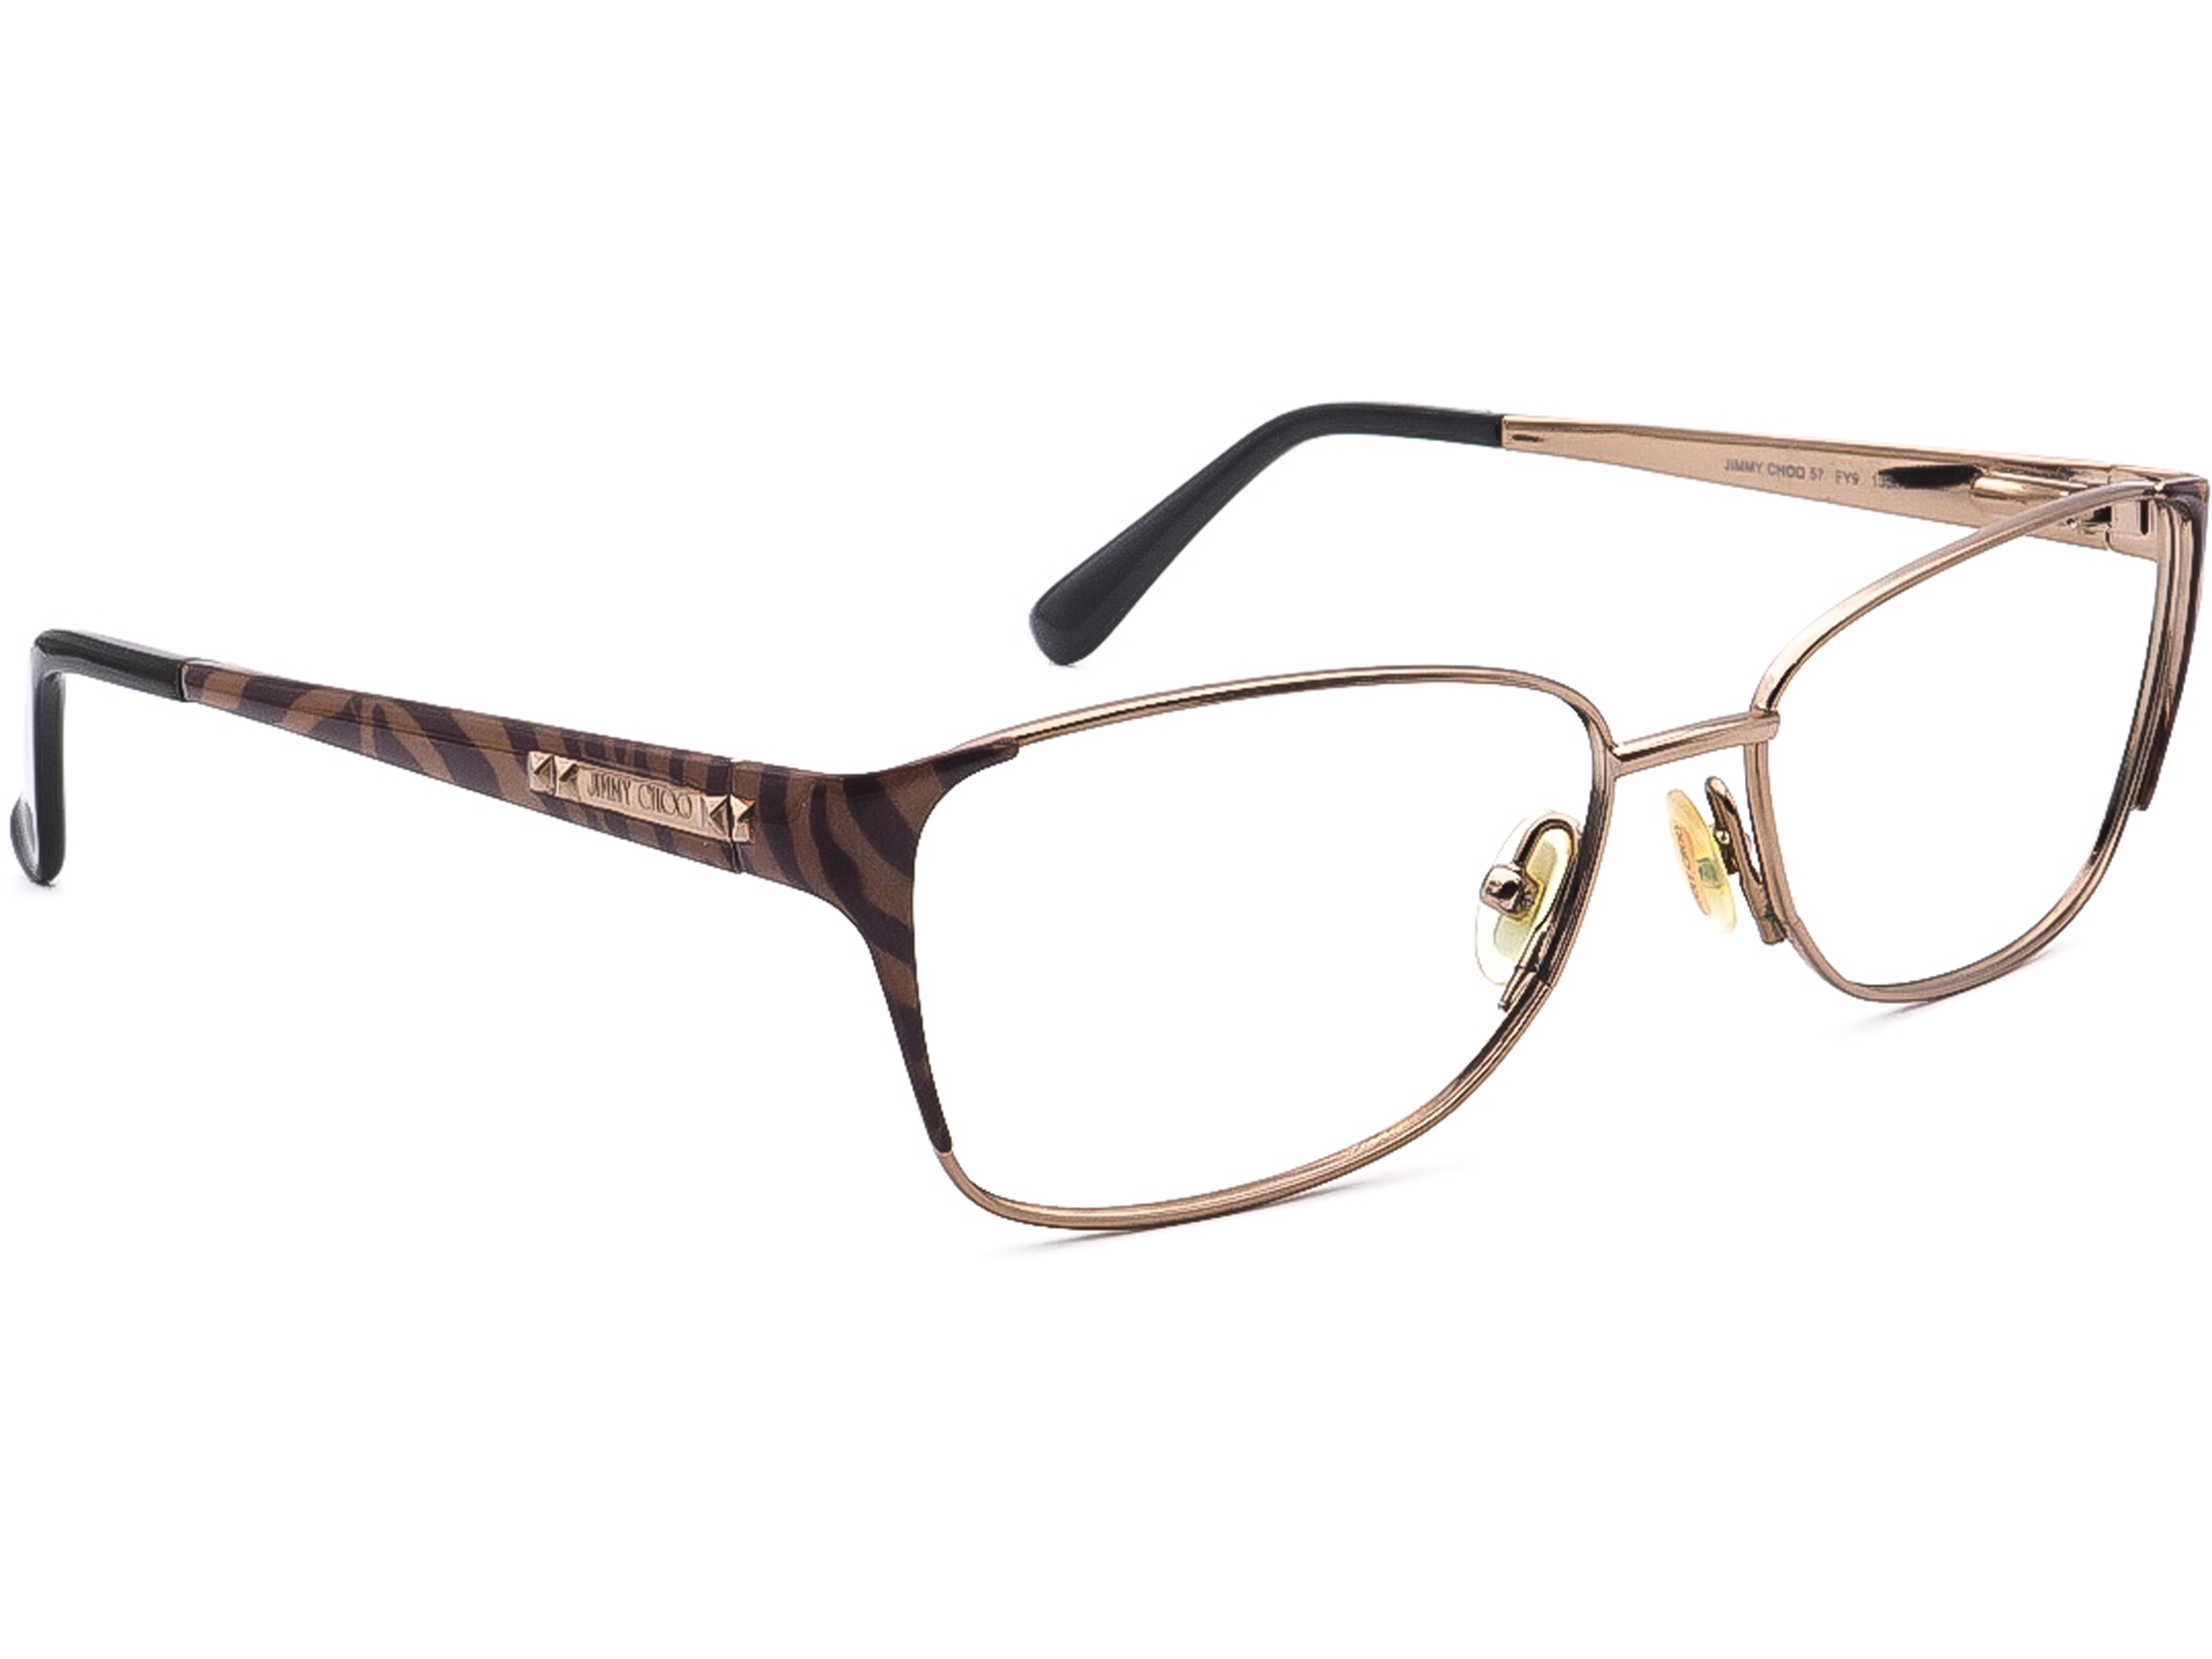 Jimmy Choo 57 FY9 Eyeglasses